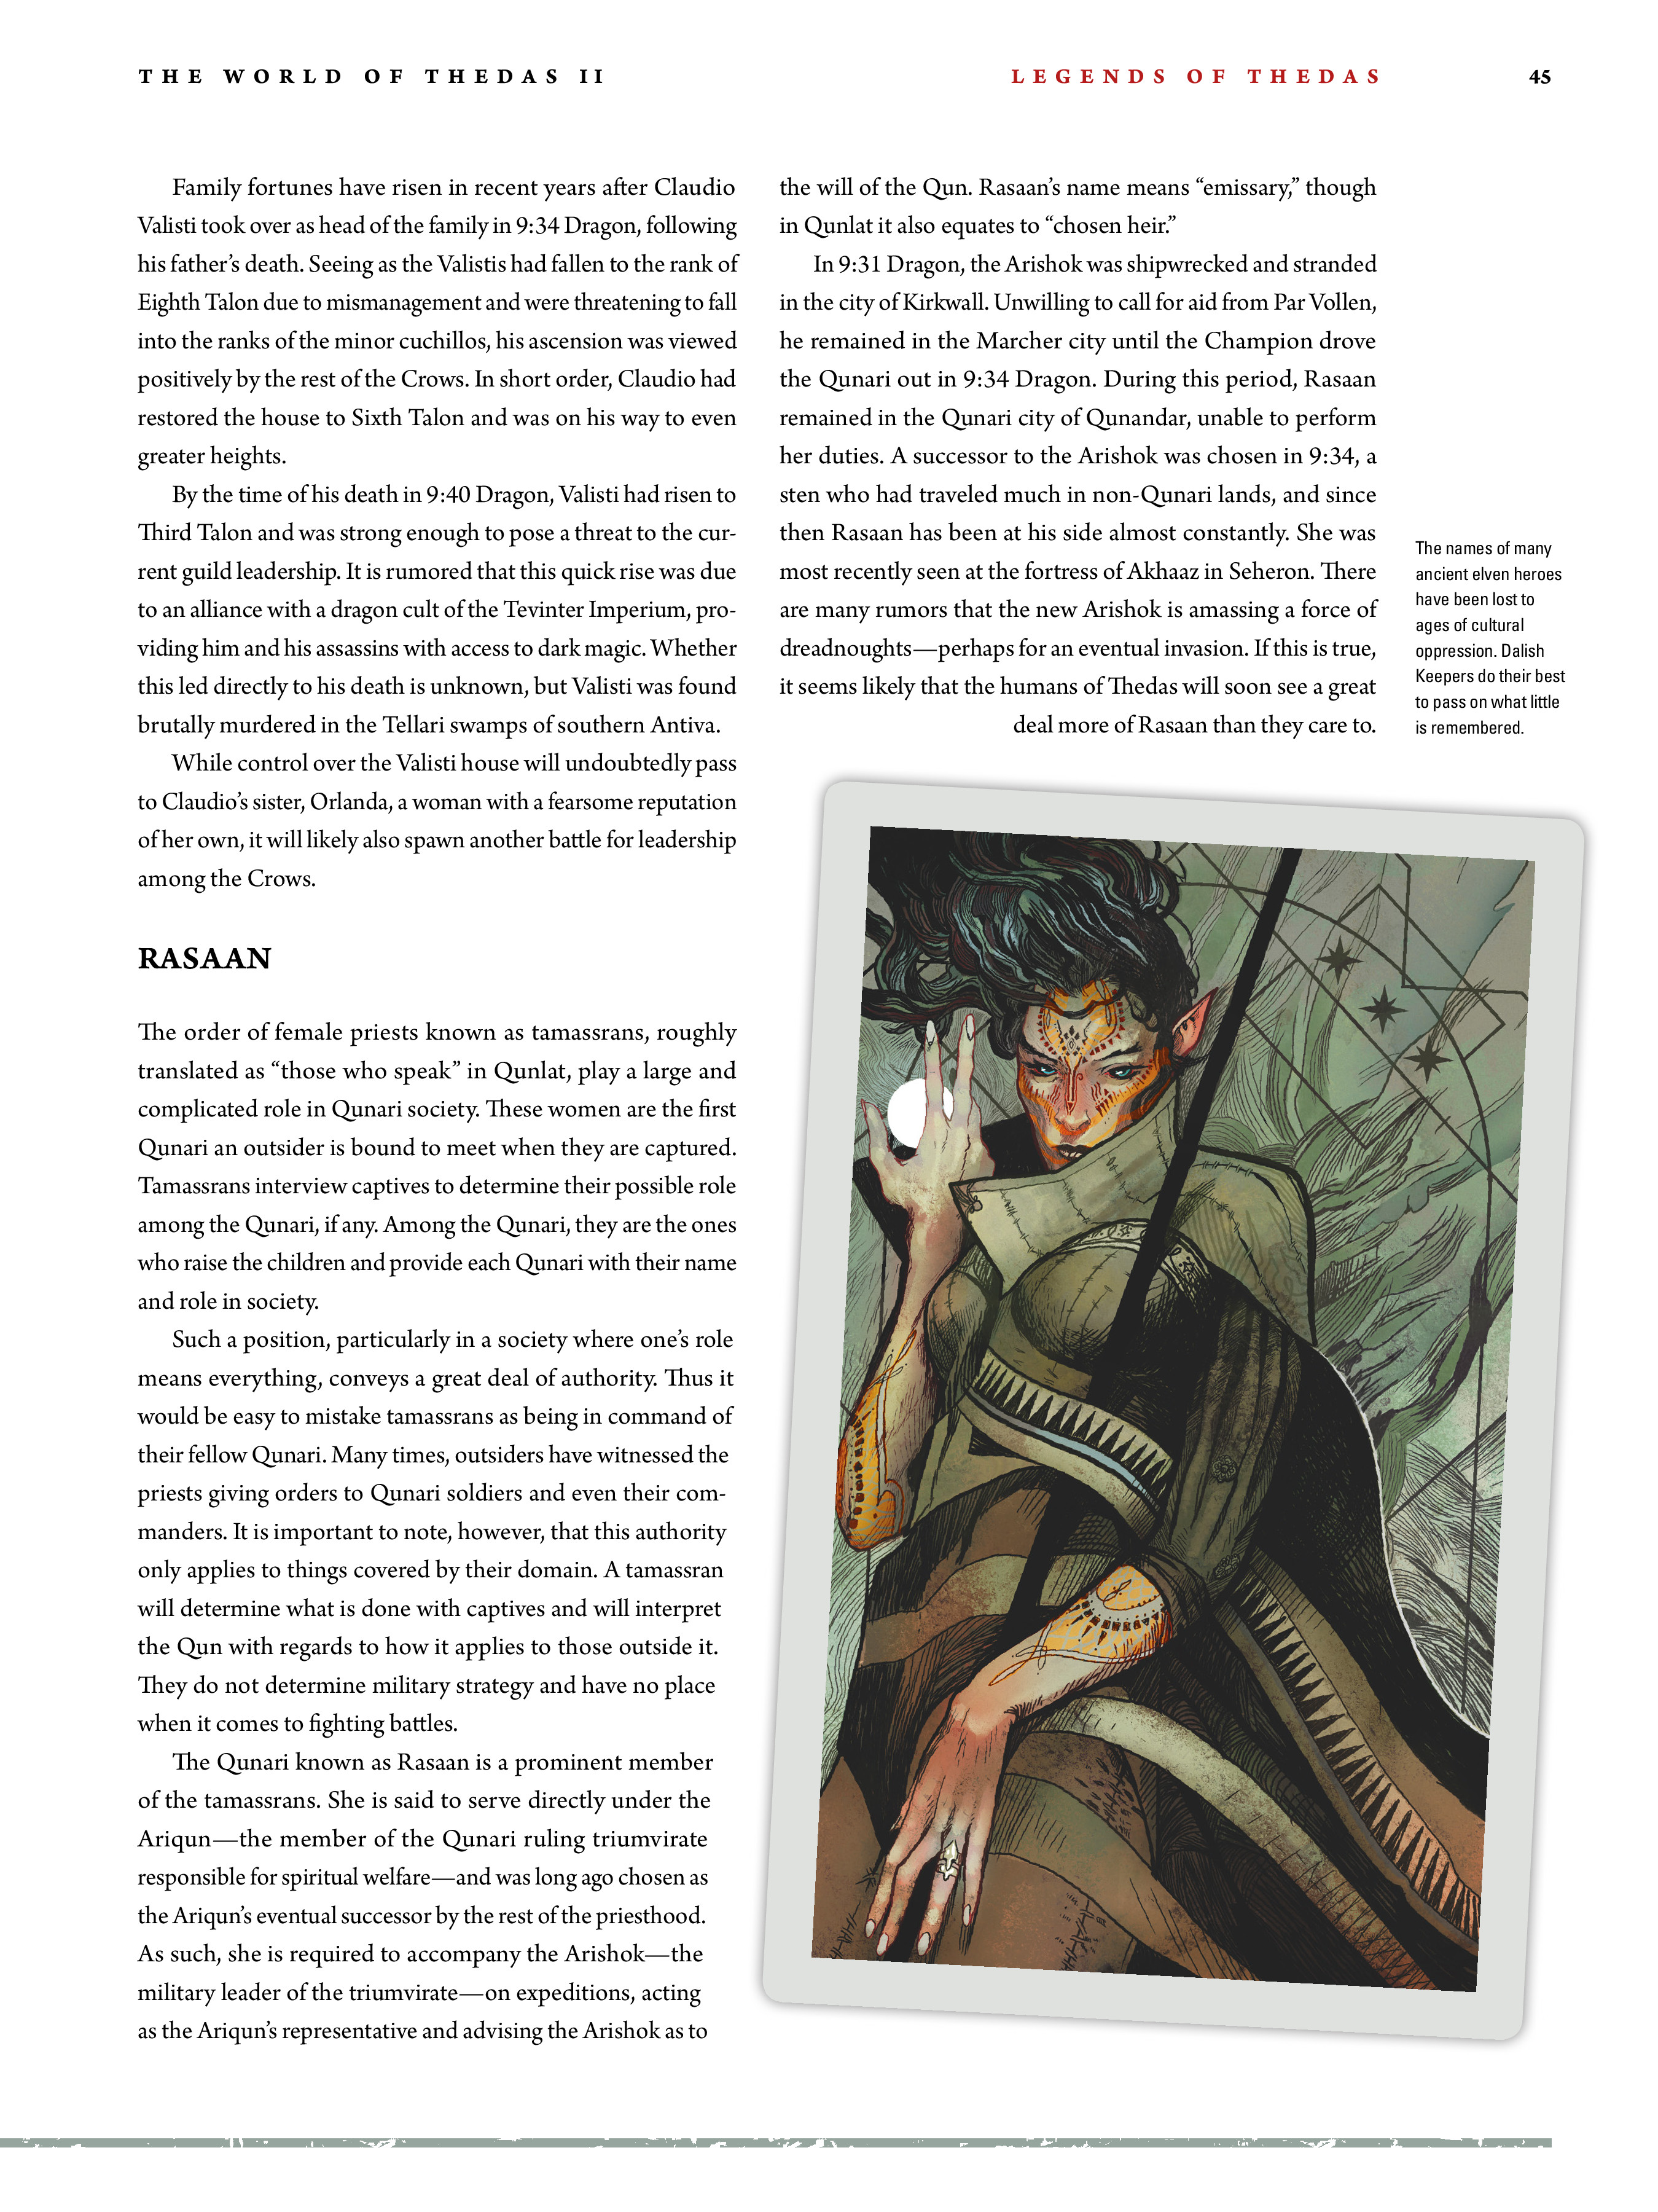 Read online Dragon Age: The World of Thedas comic -  Issue # TPB 2 - 42